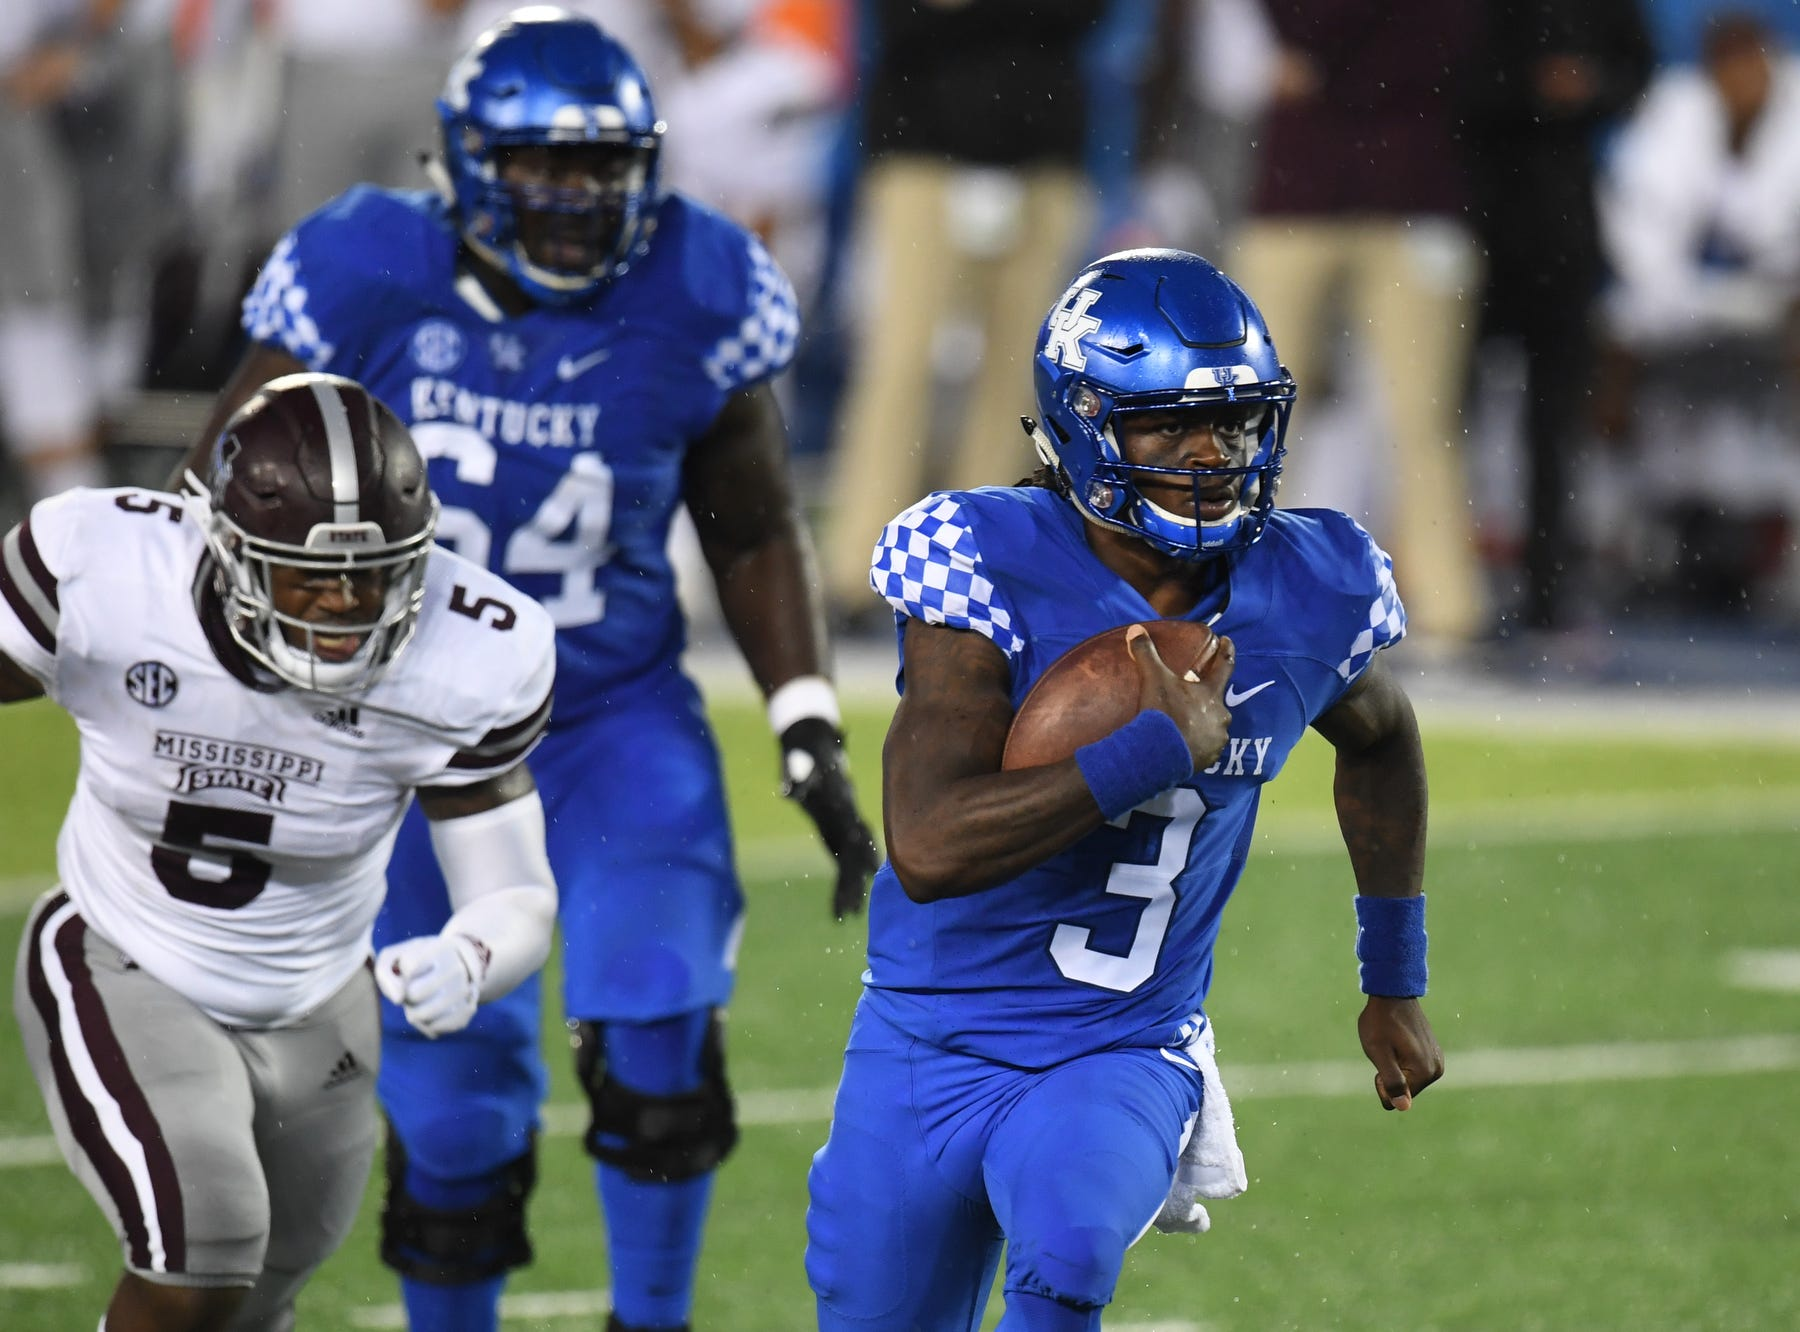 UK QB Terry Wilson keeps the ball during the University of Kentucky football game against Mississippi State at Kroger Field in Lexington, Kentucky on Saturday, September 22, 2018.